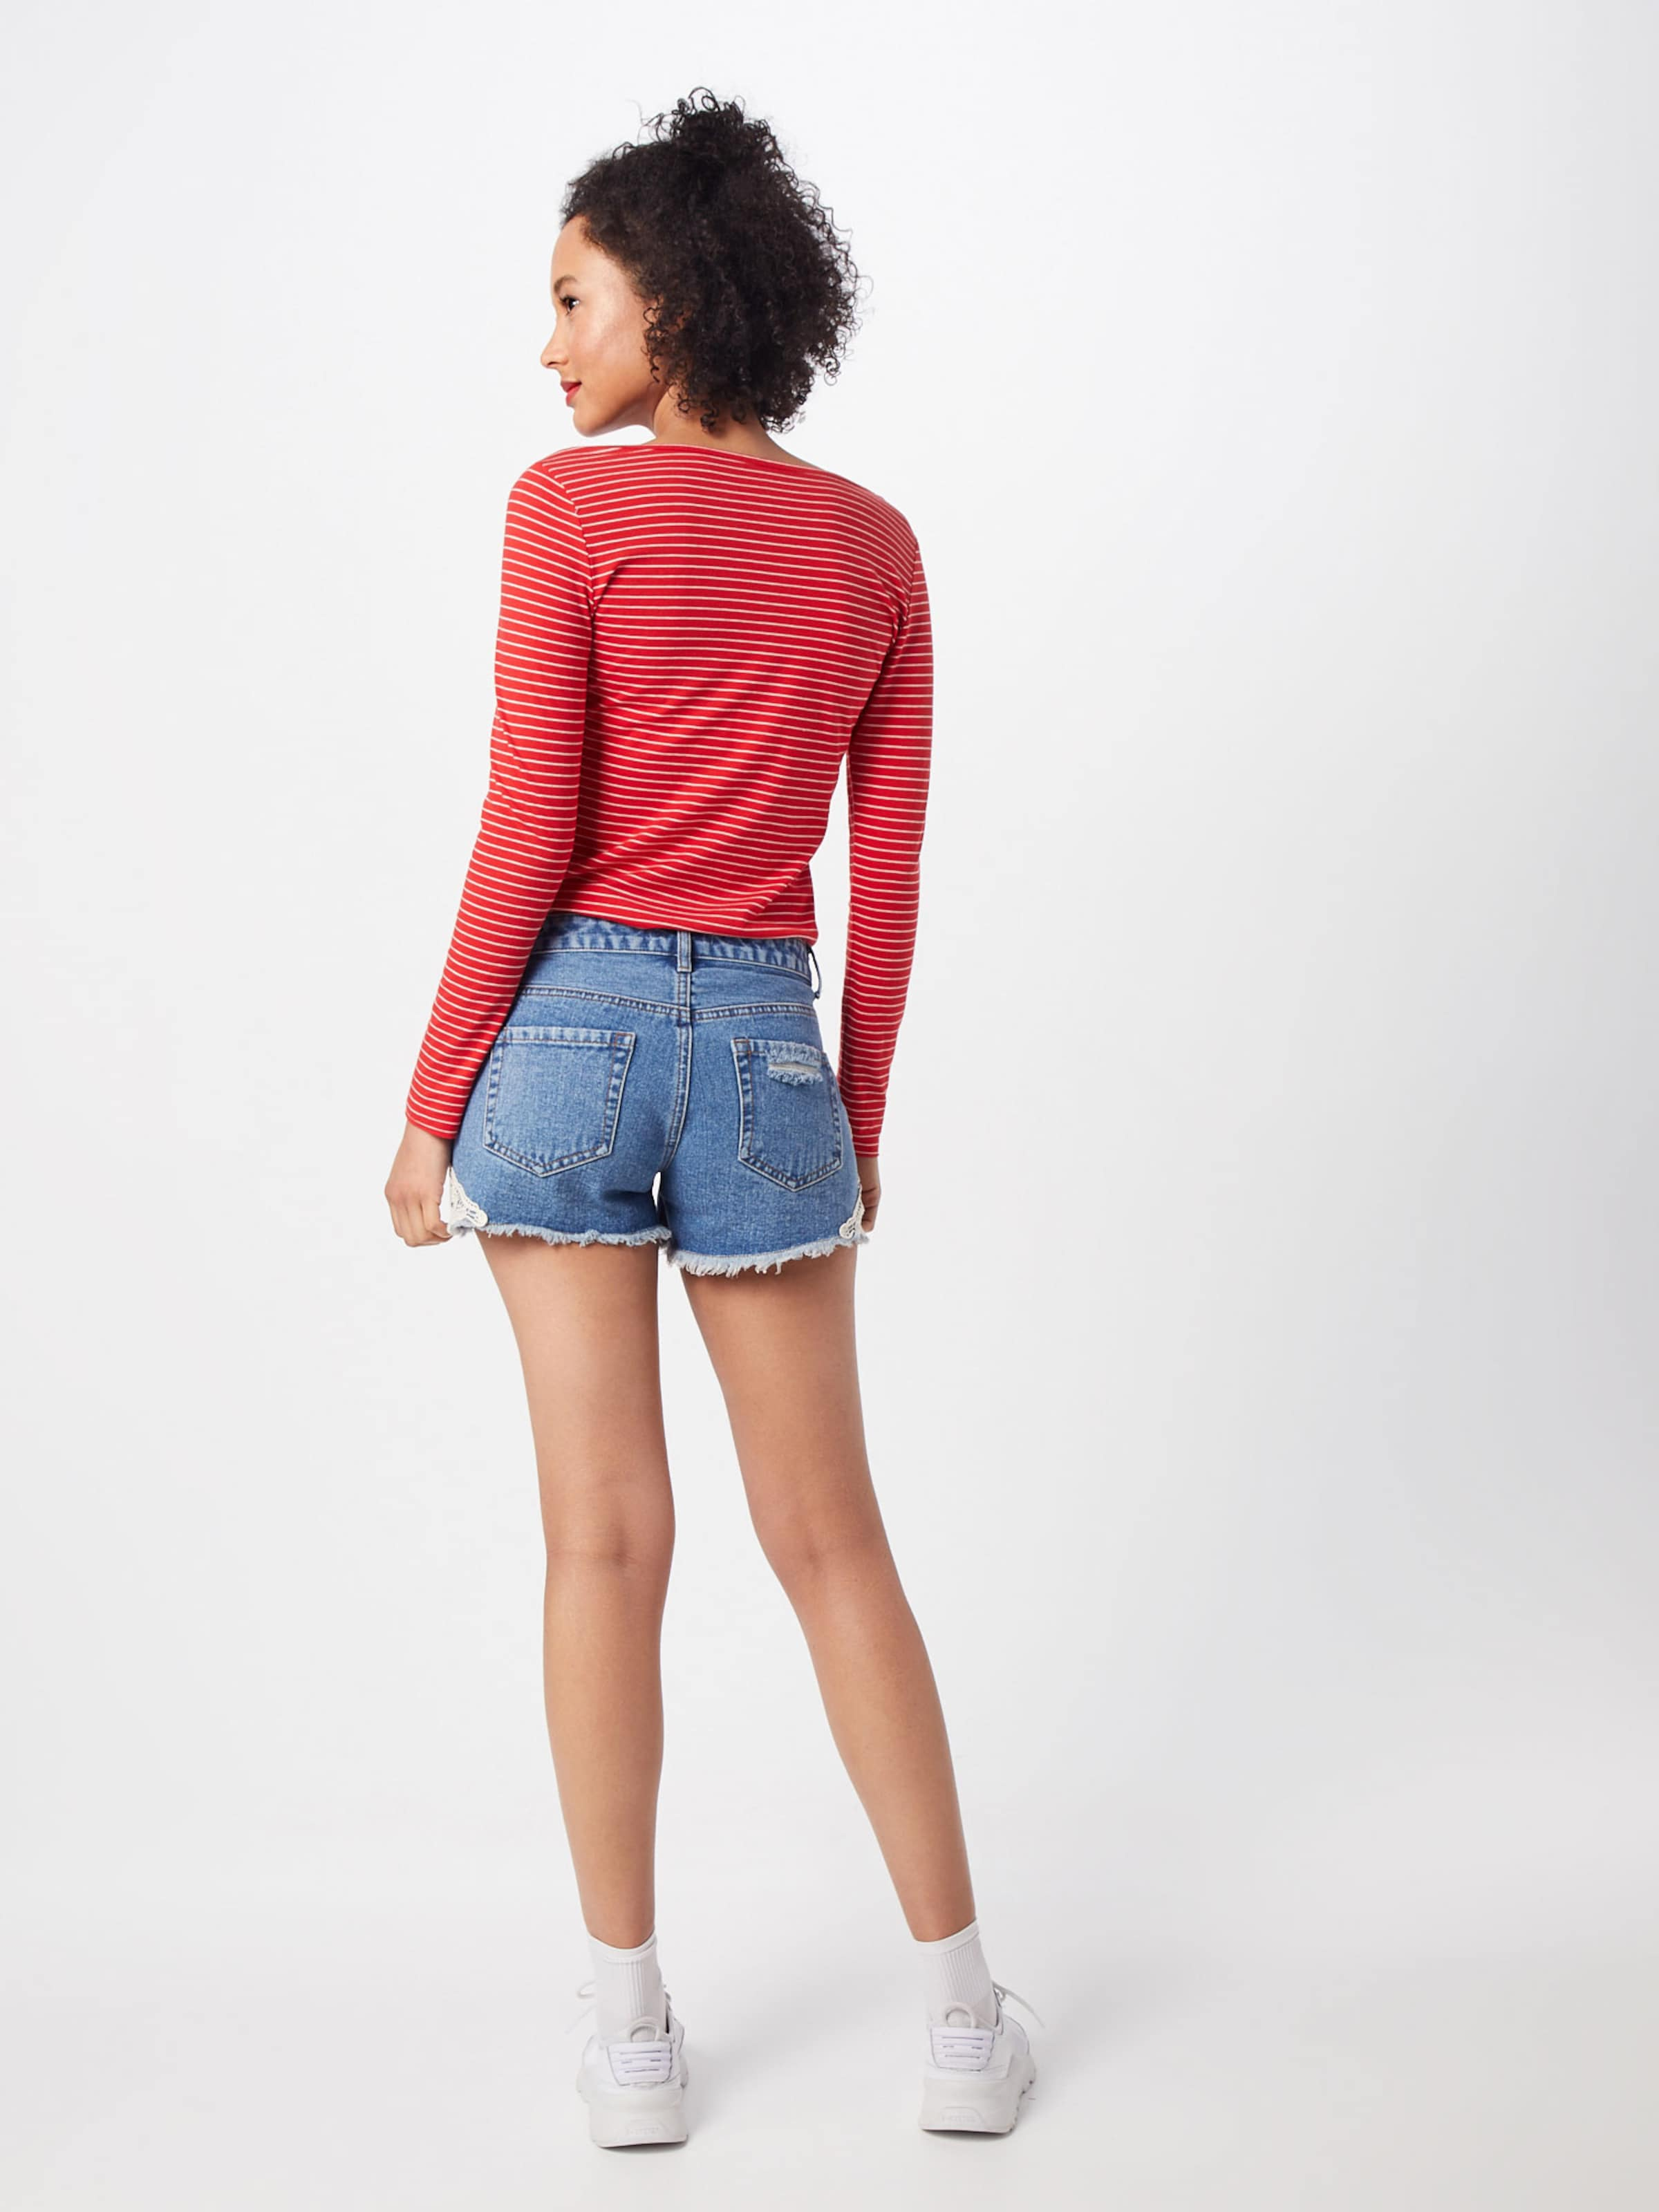 'betty' About Jeans In You Denim Blue jL5R4c3ASq